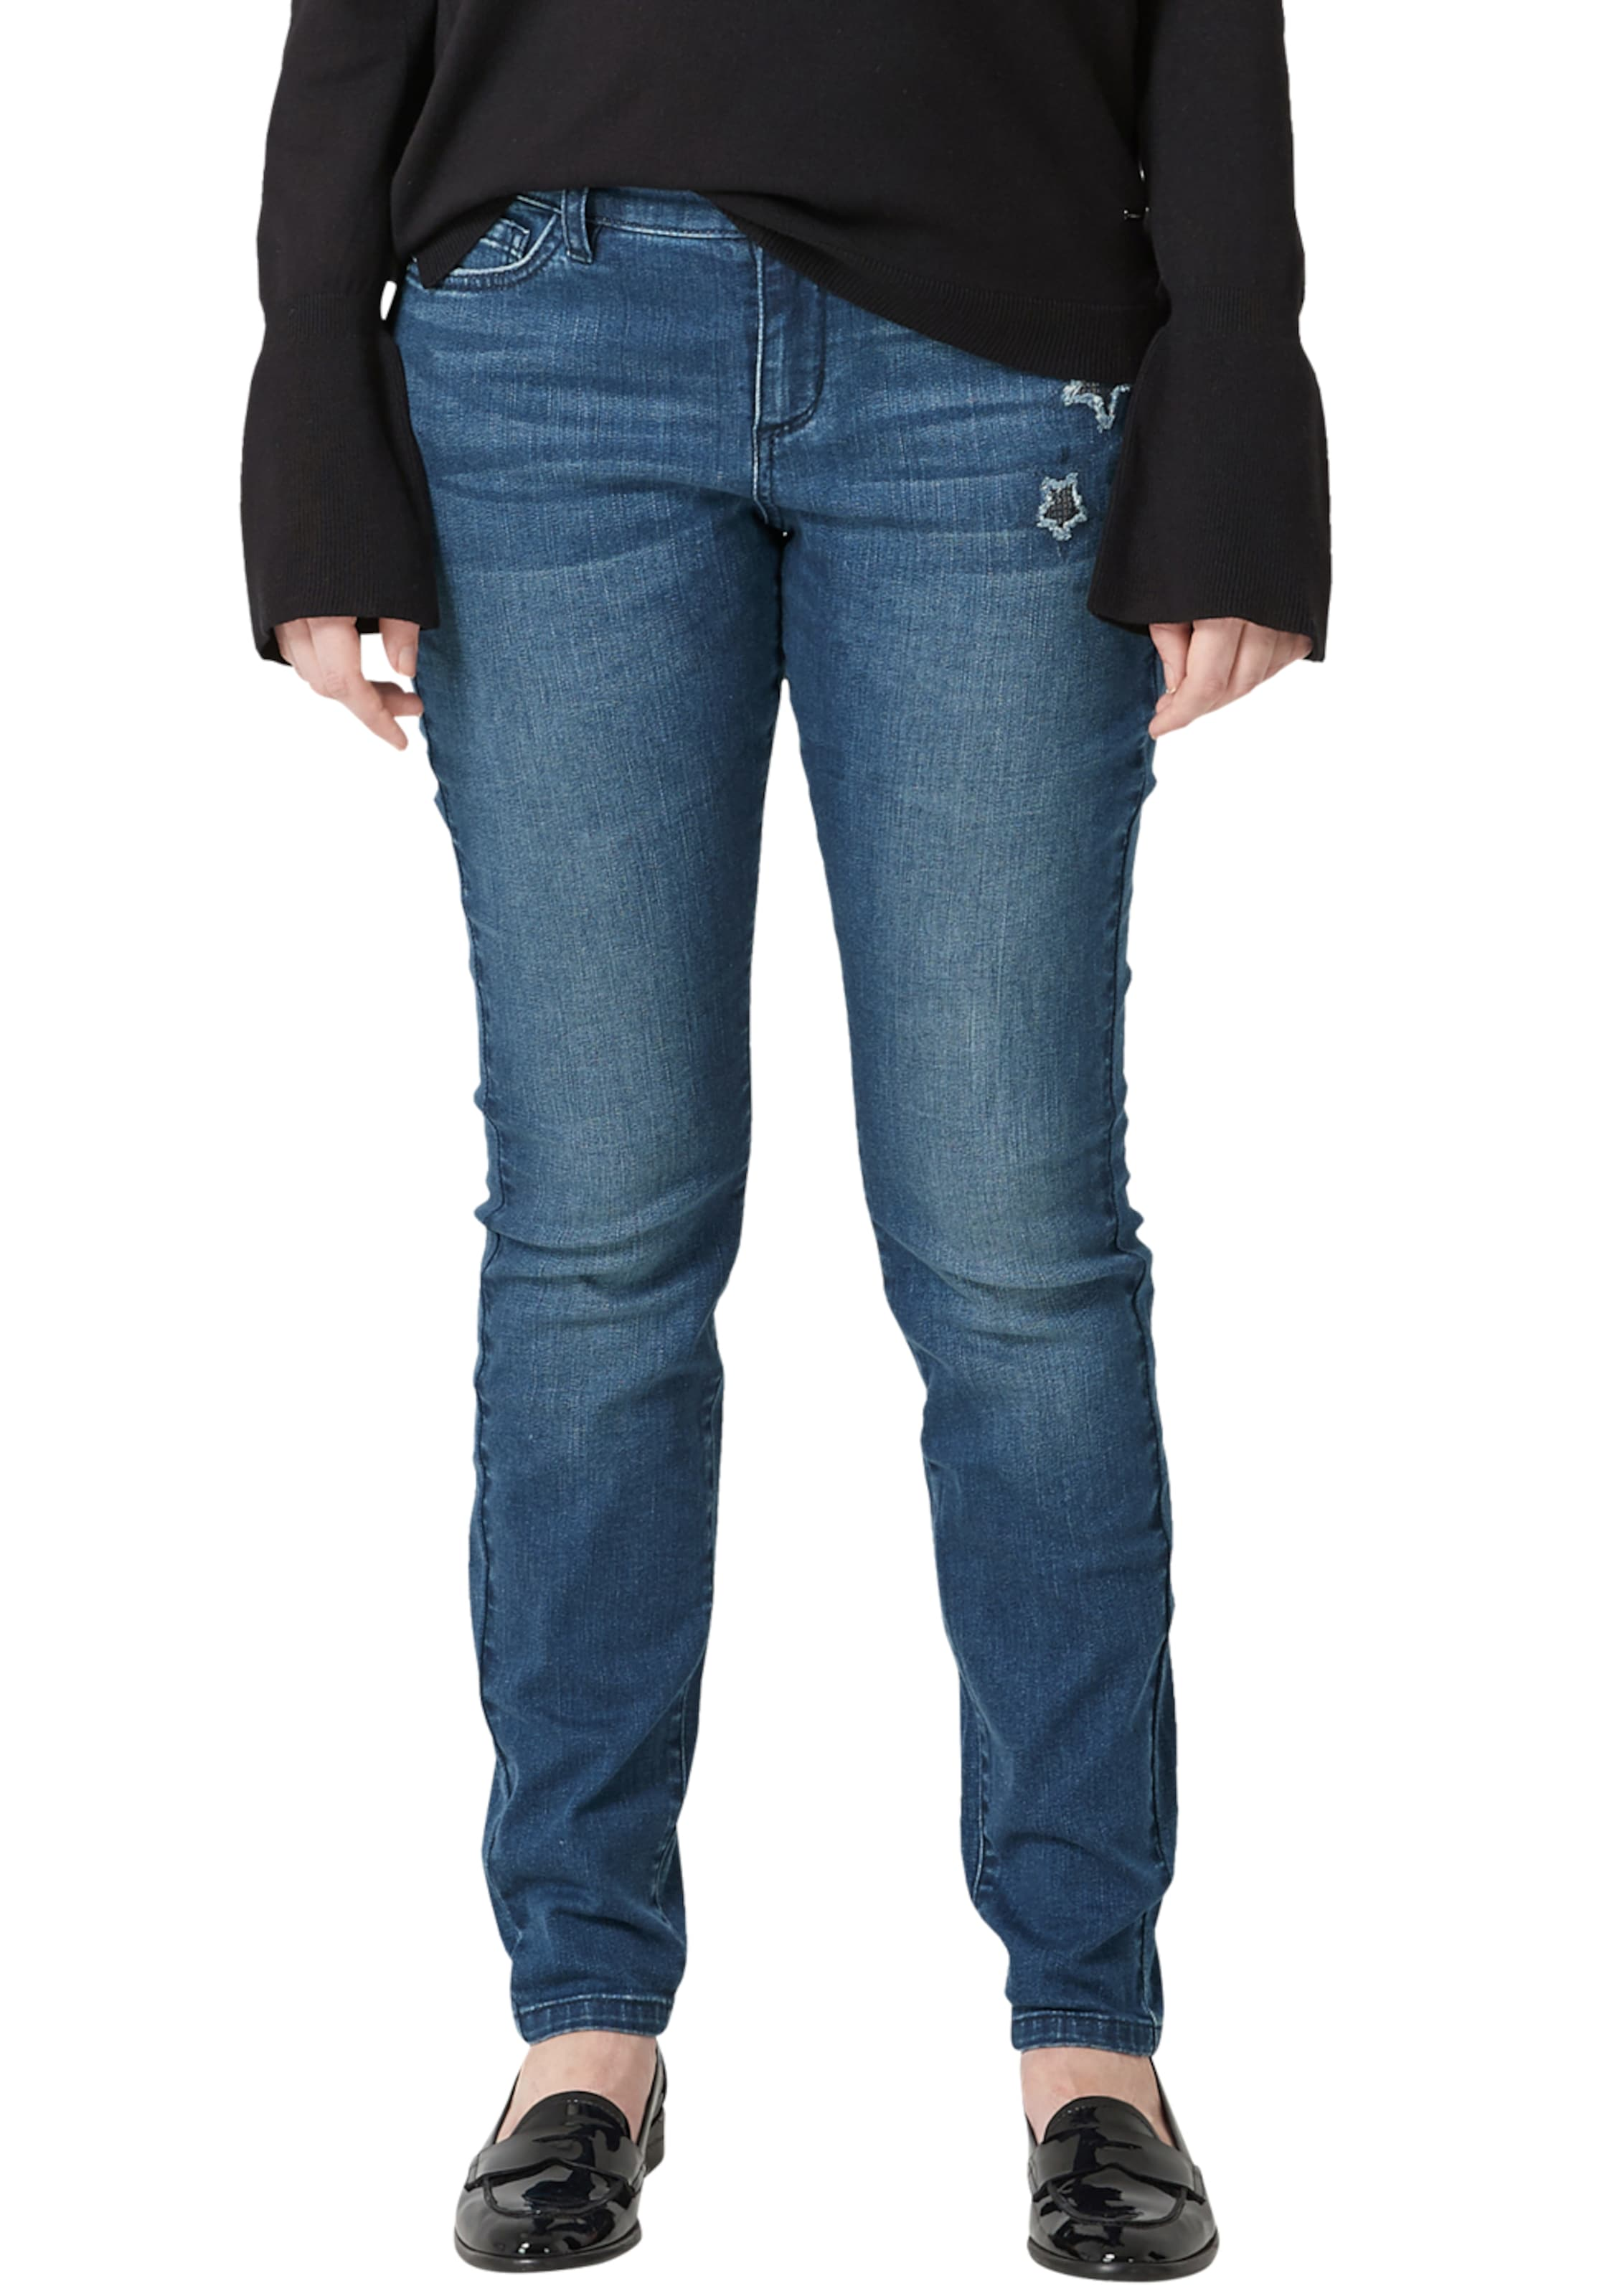 Jeans Triangle In Denim In Jeans Jeans Triangle Blue In Denim Triangle Blue Blue Jl1FTKc